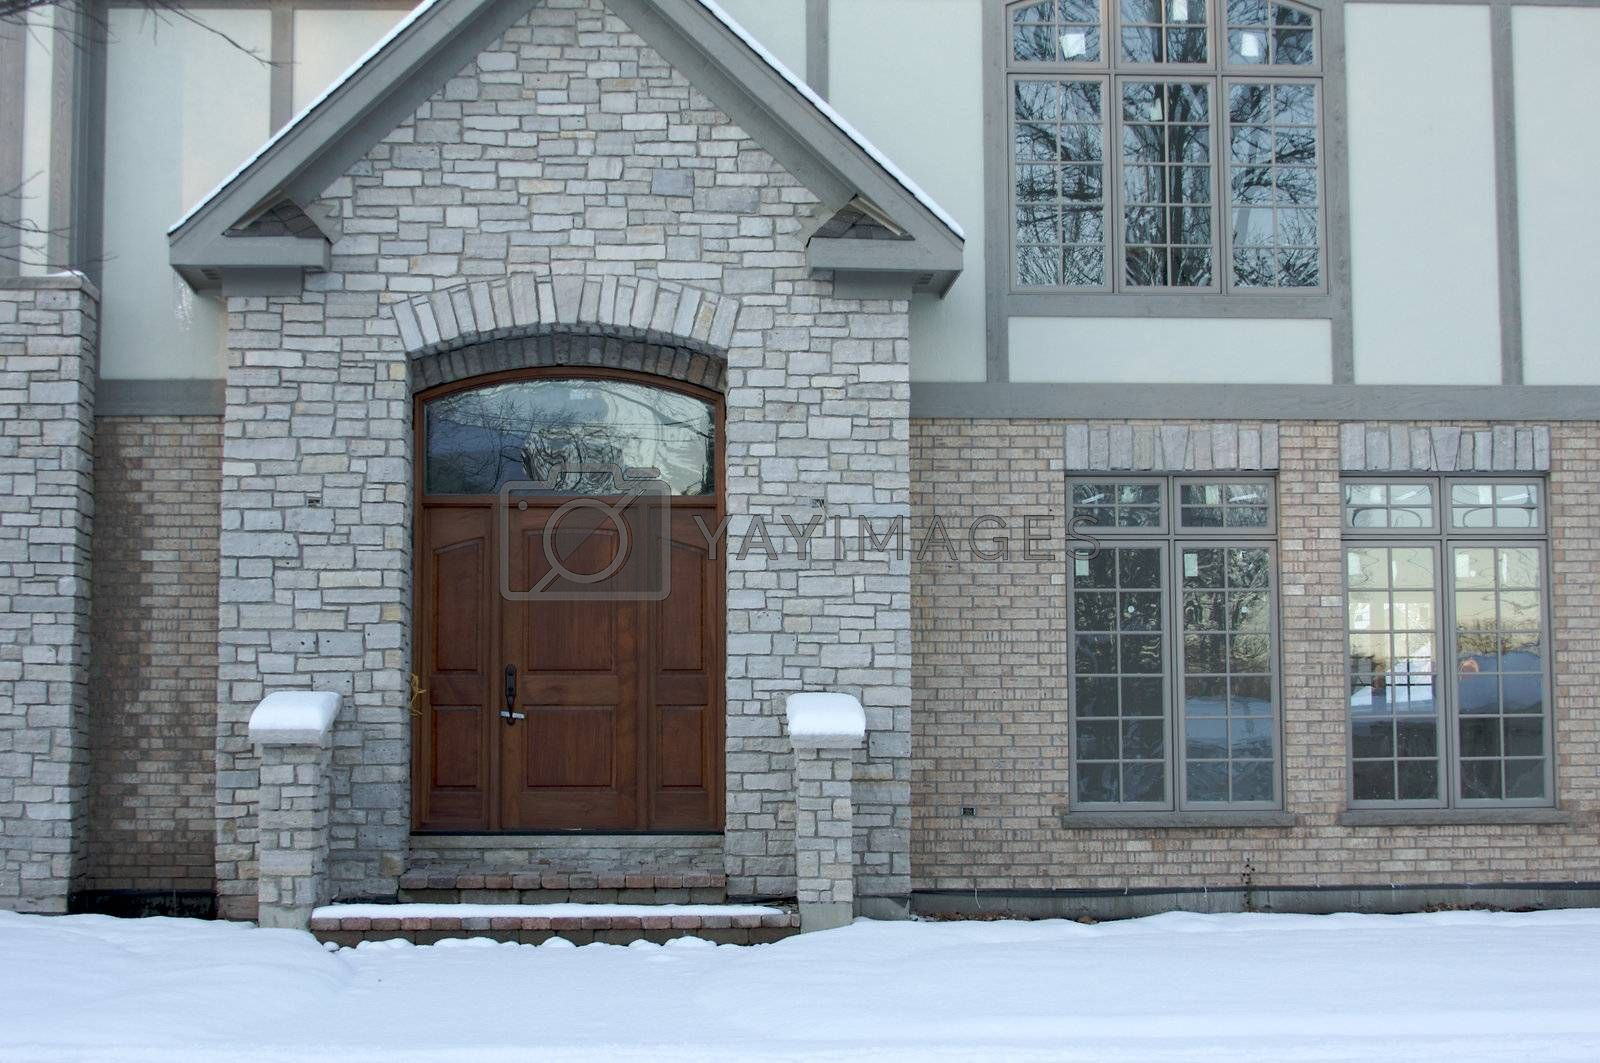 Majestic Newly Constructed Home Facade on a Blustry Winter Day